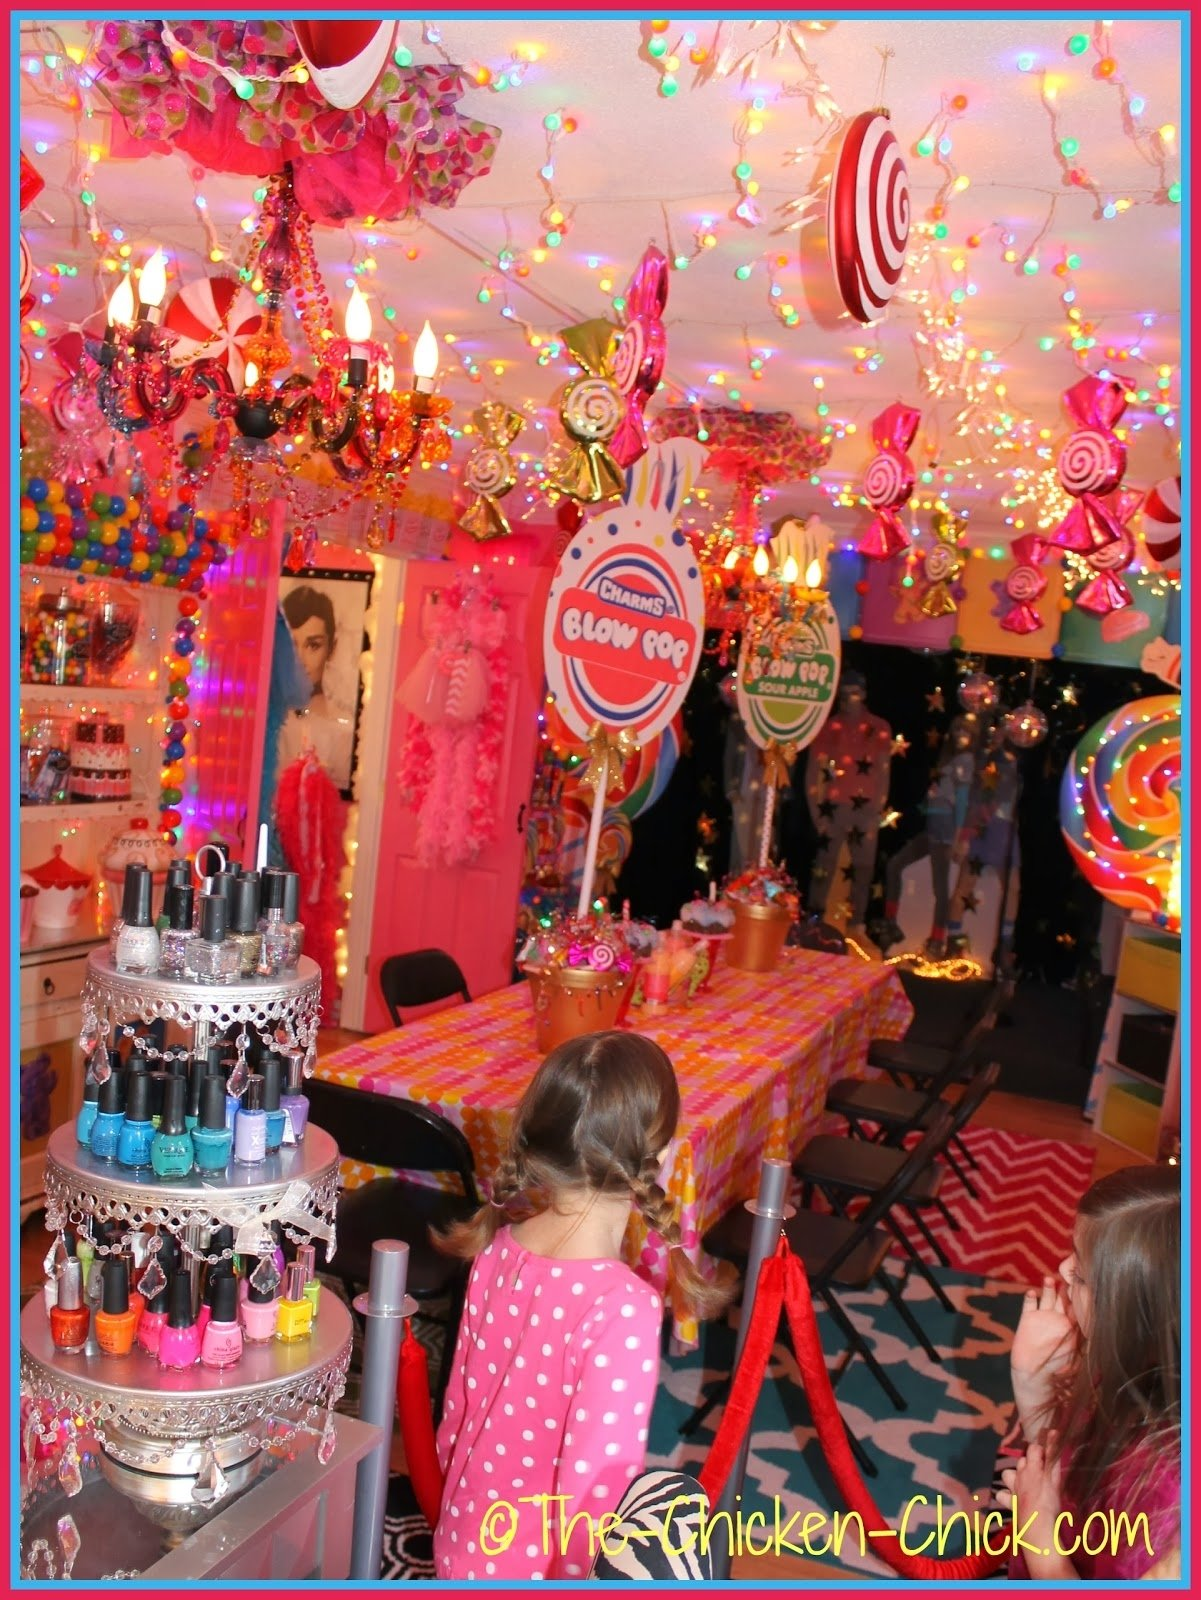 10 Unique Birthday Party Ideas For 10 Year Girl spa birthday party ideas for 7 year olds pool design ideas 43 2020